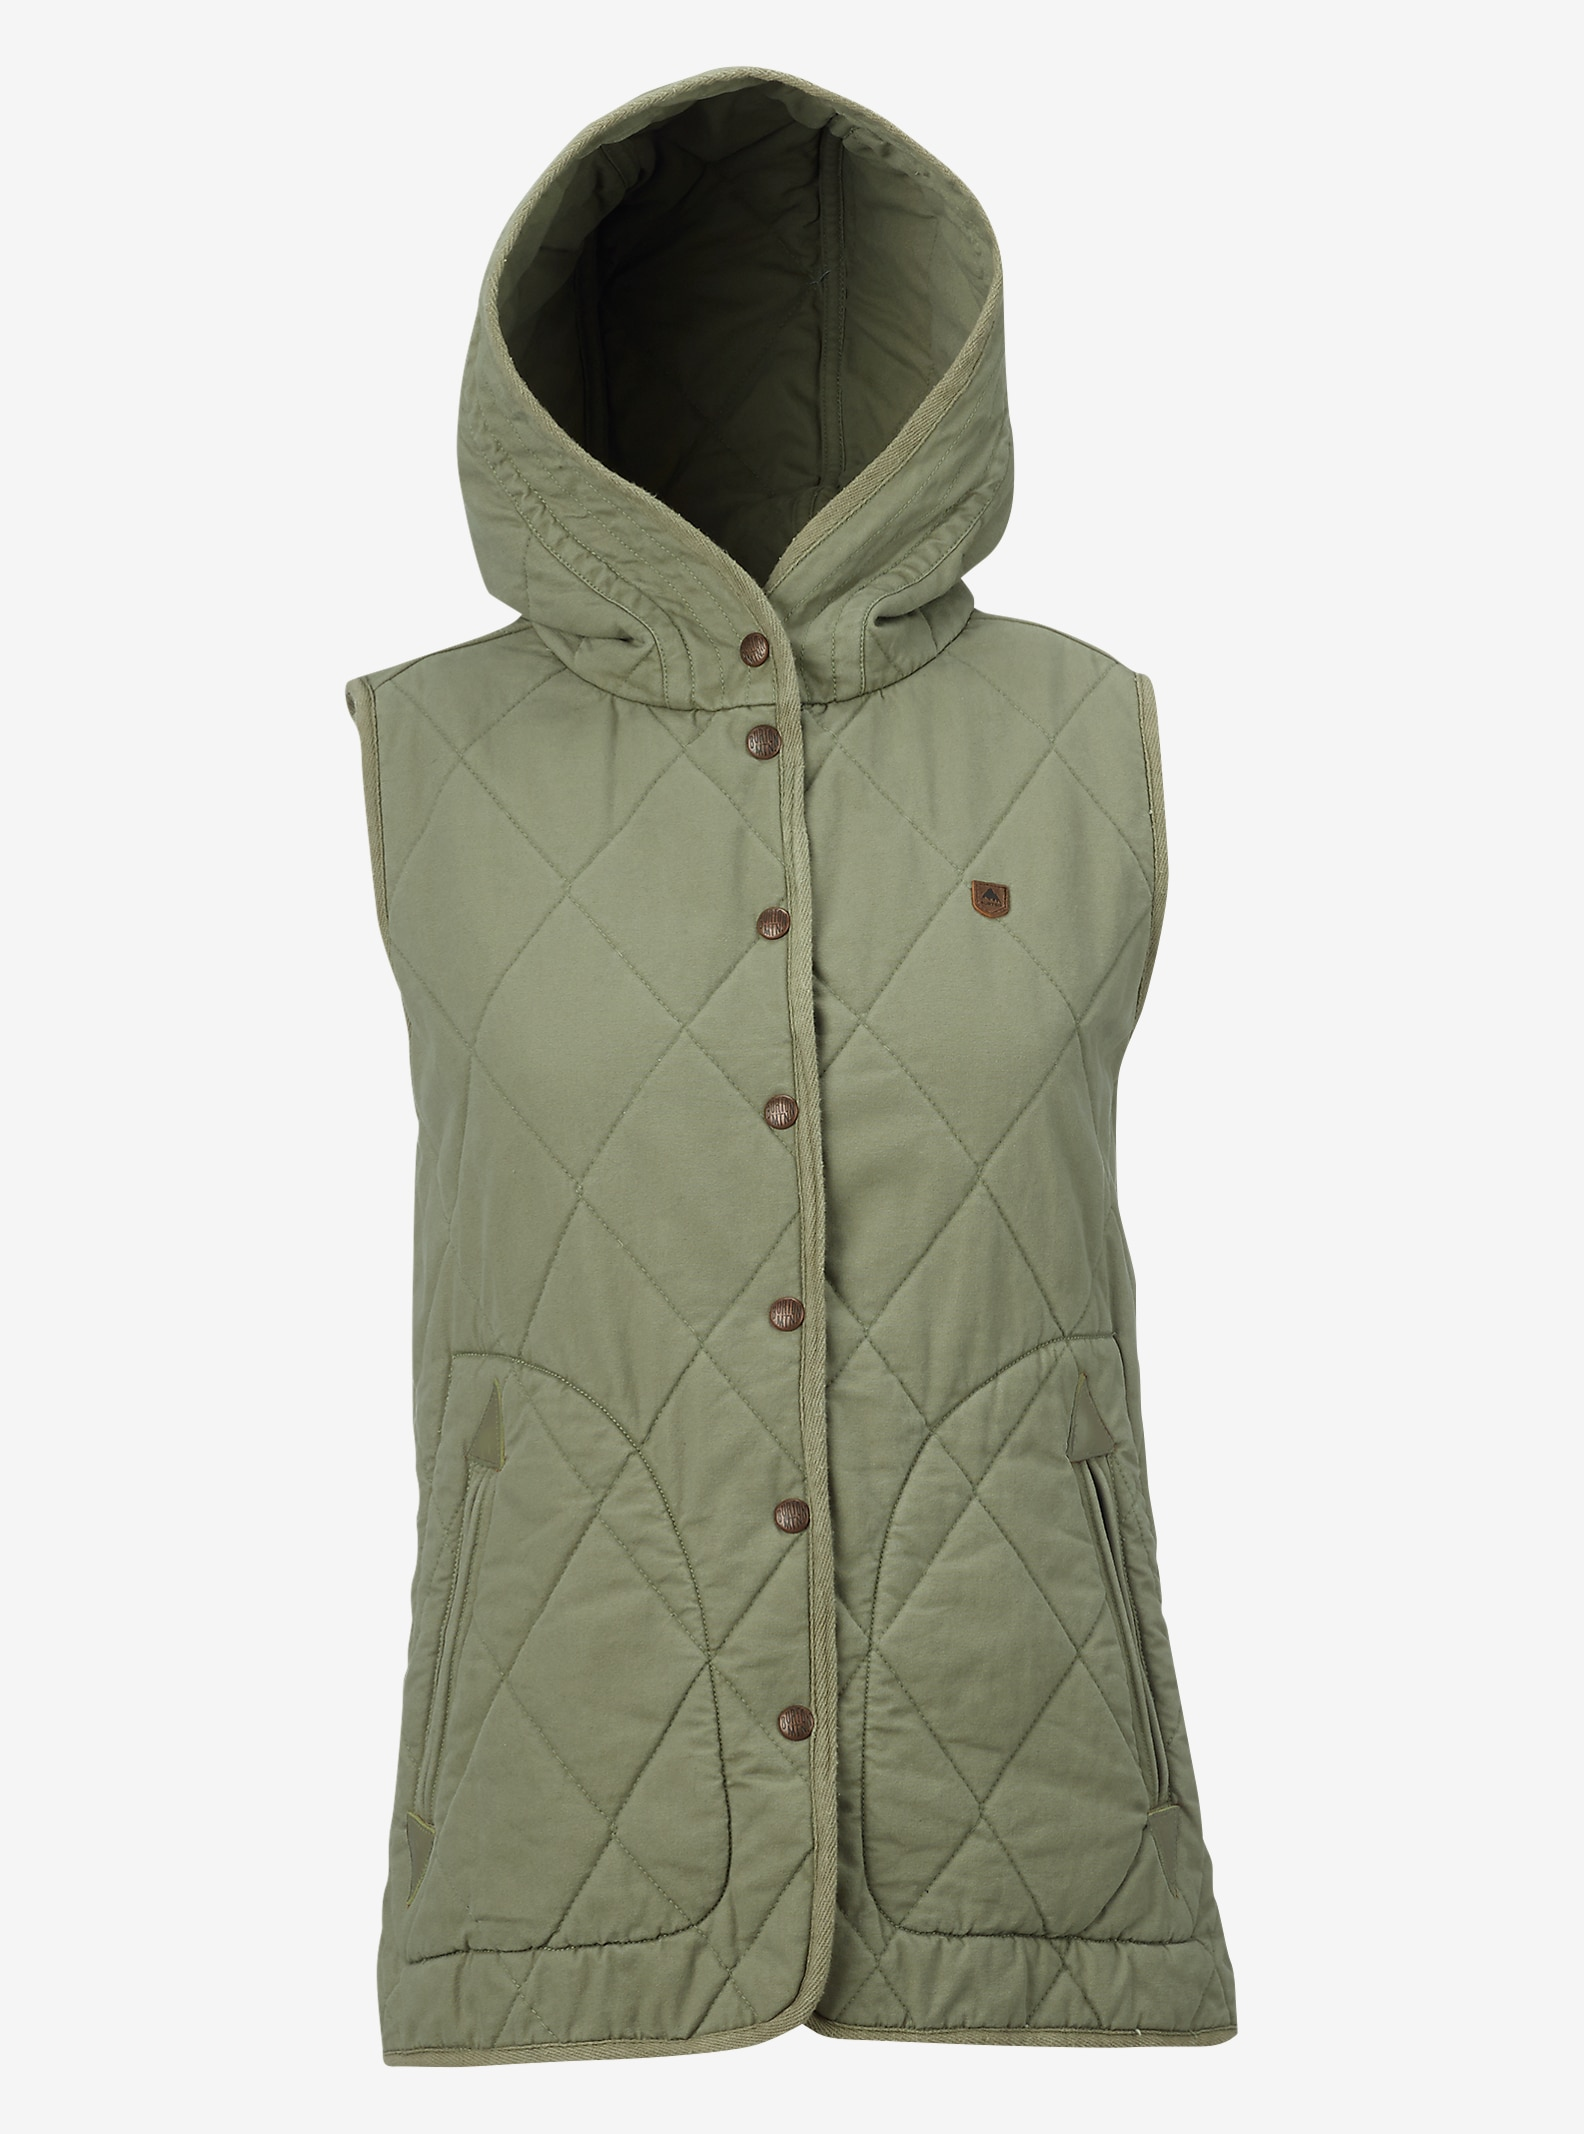 Burton Gemmi Vest shown in Vetiver